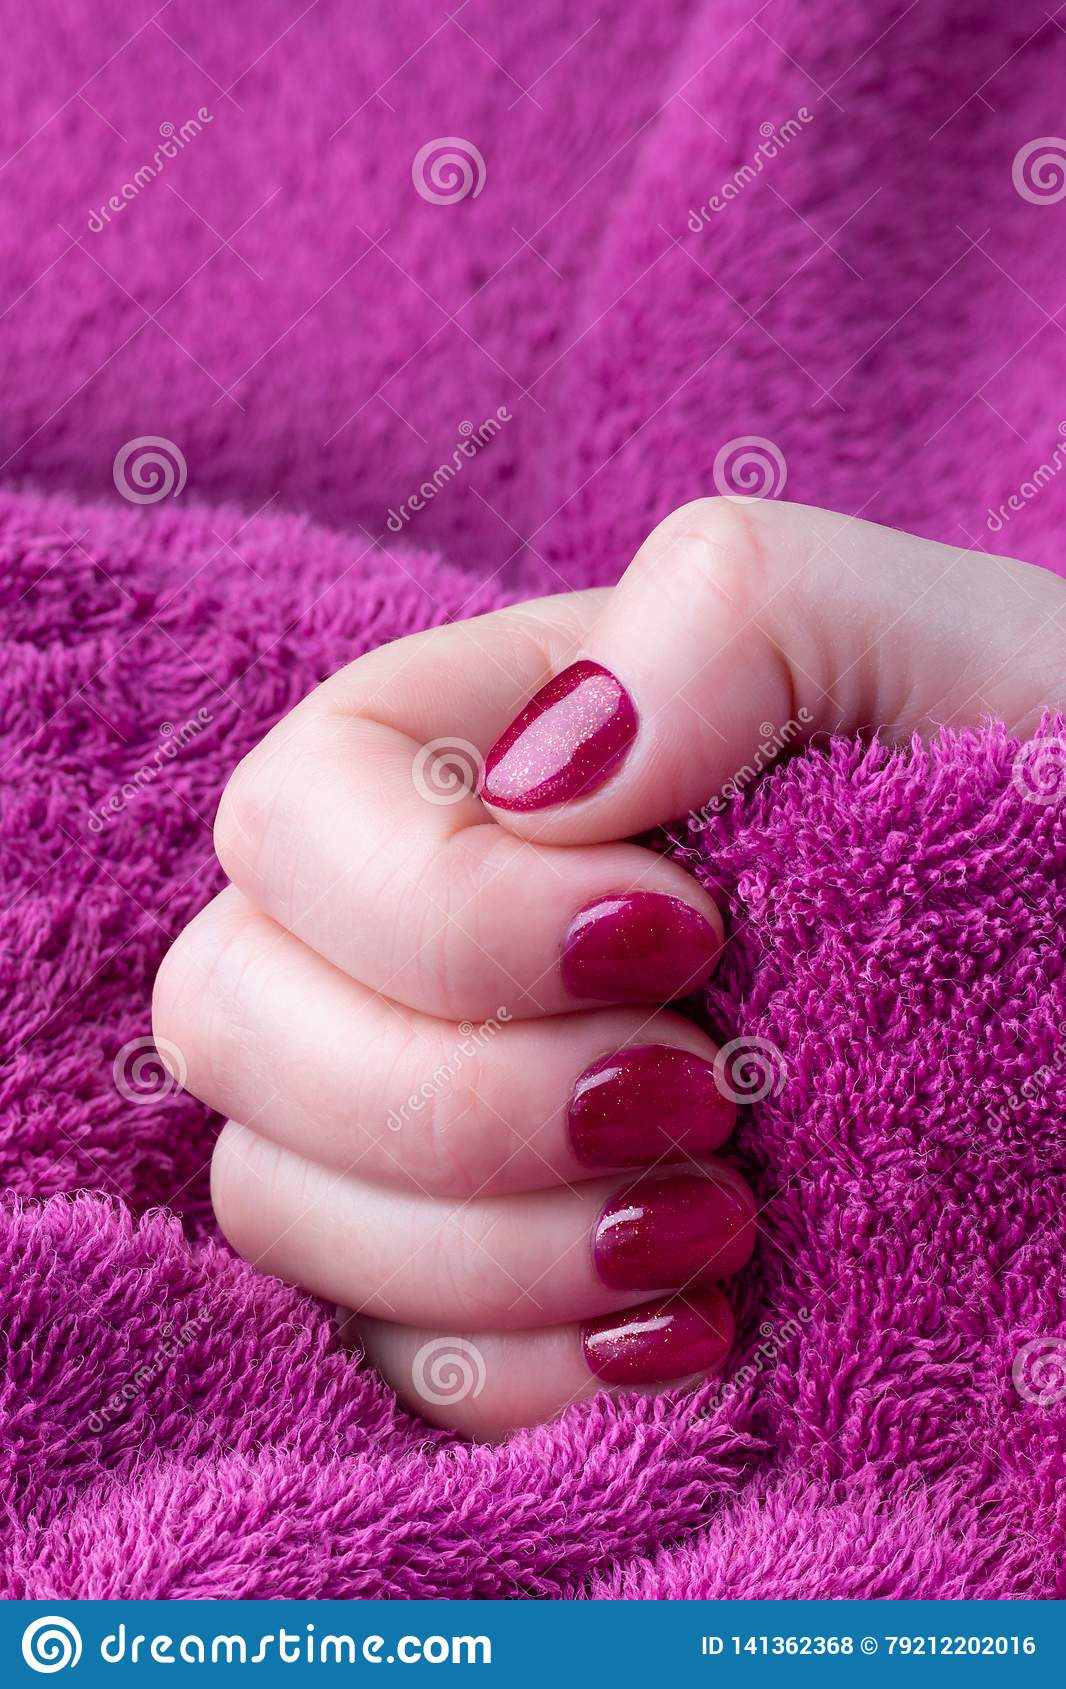 Hand with red short manicured nails with a purple towel background